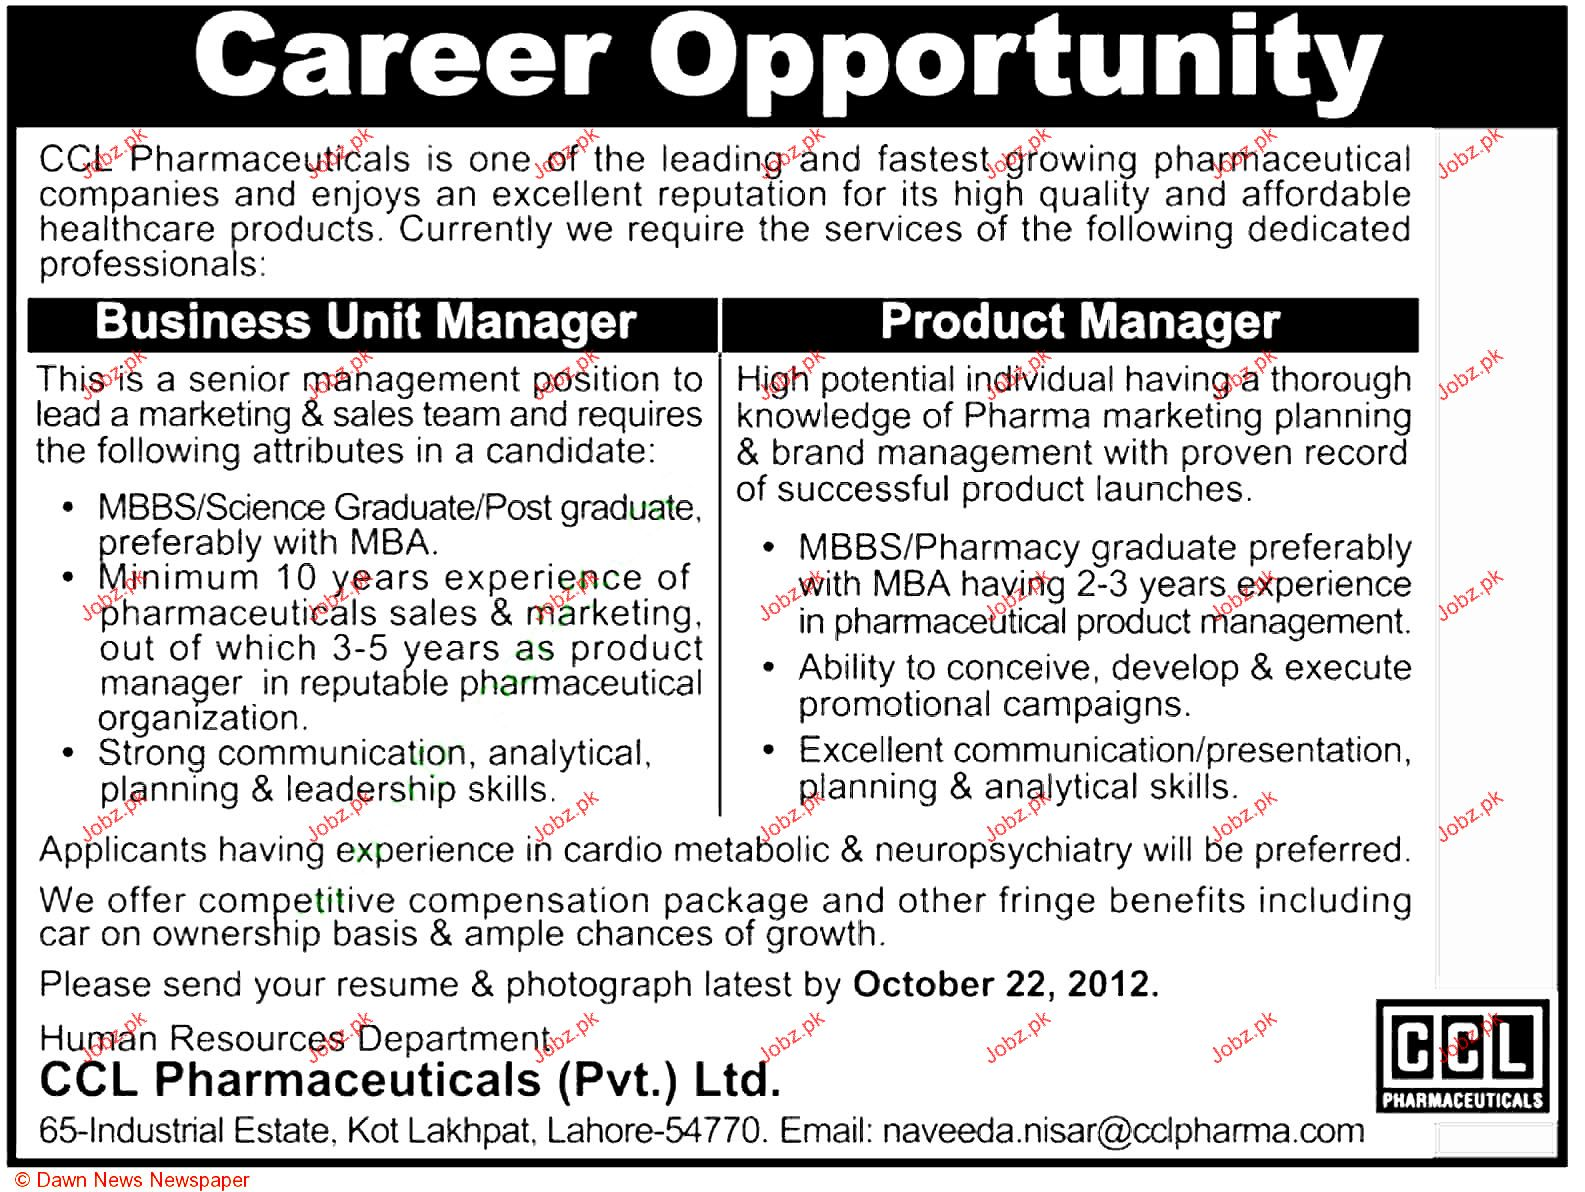 Business Unit Manager And Product Manager Job Opportunity